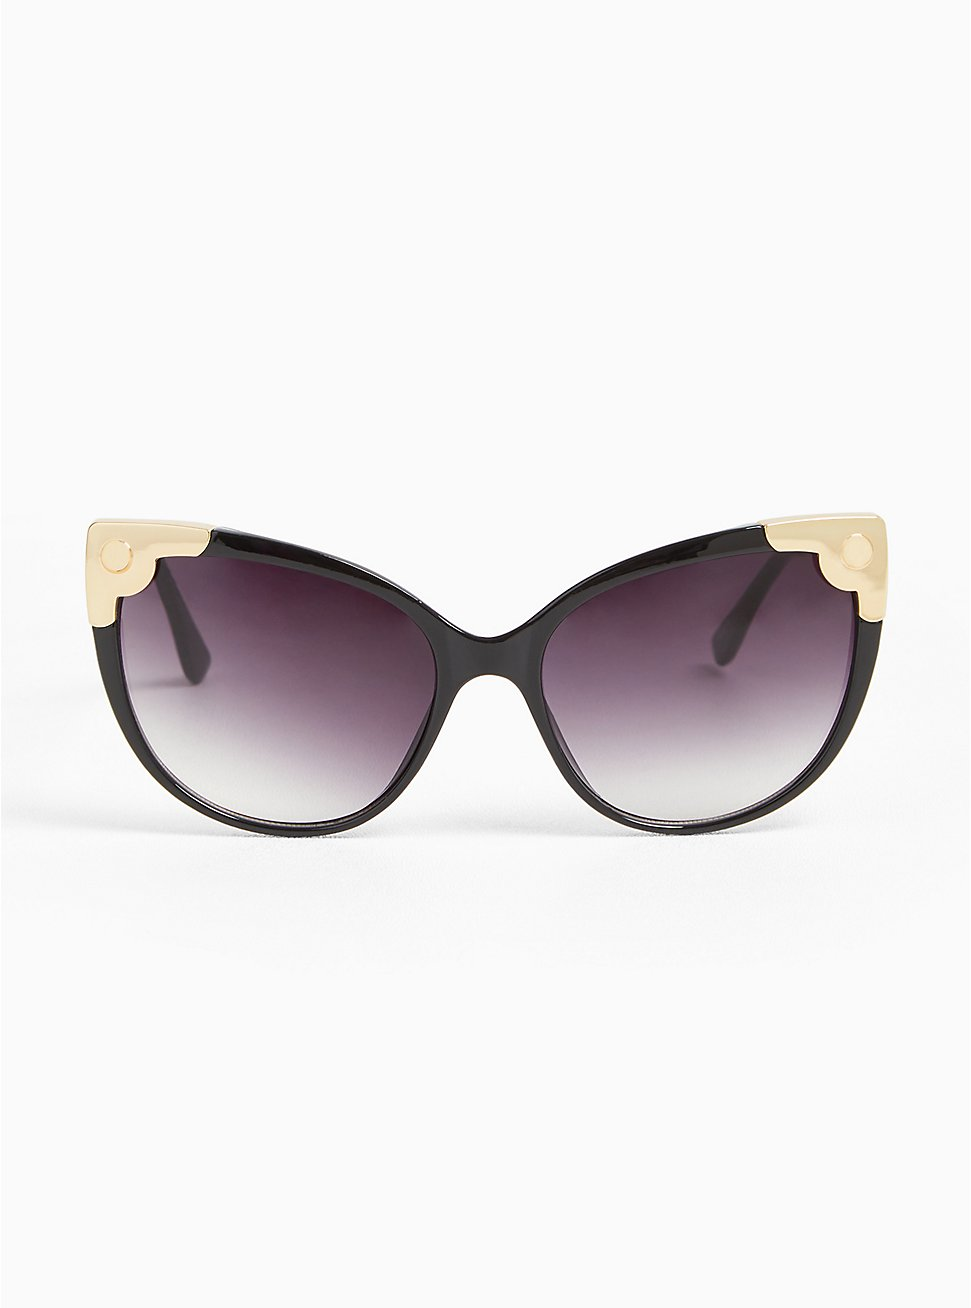 Black & Gold-Tone Corner Cat Eye Sunglasses, , hi-res